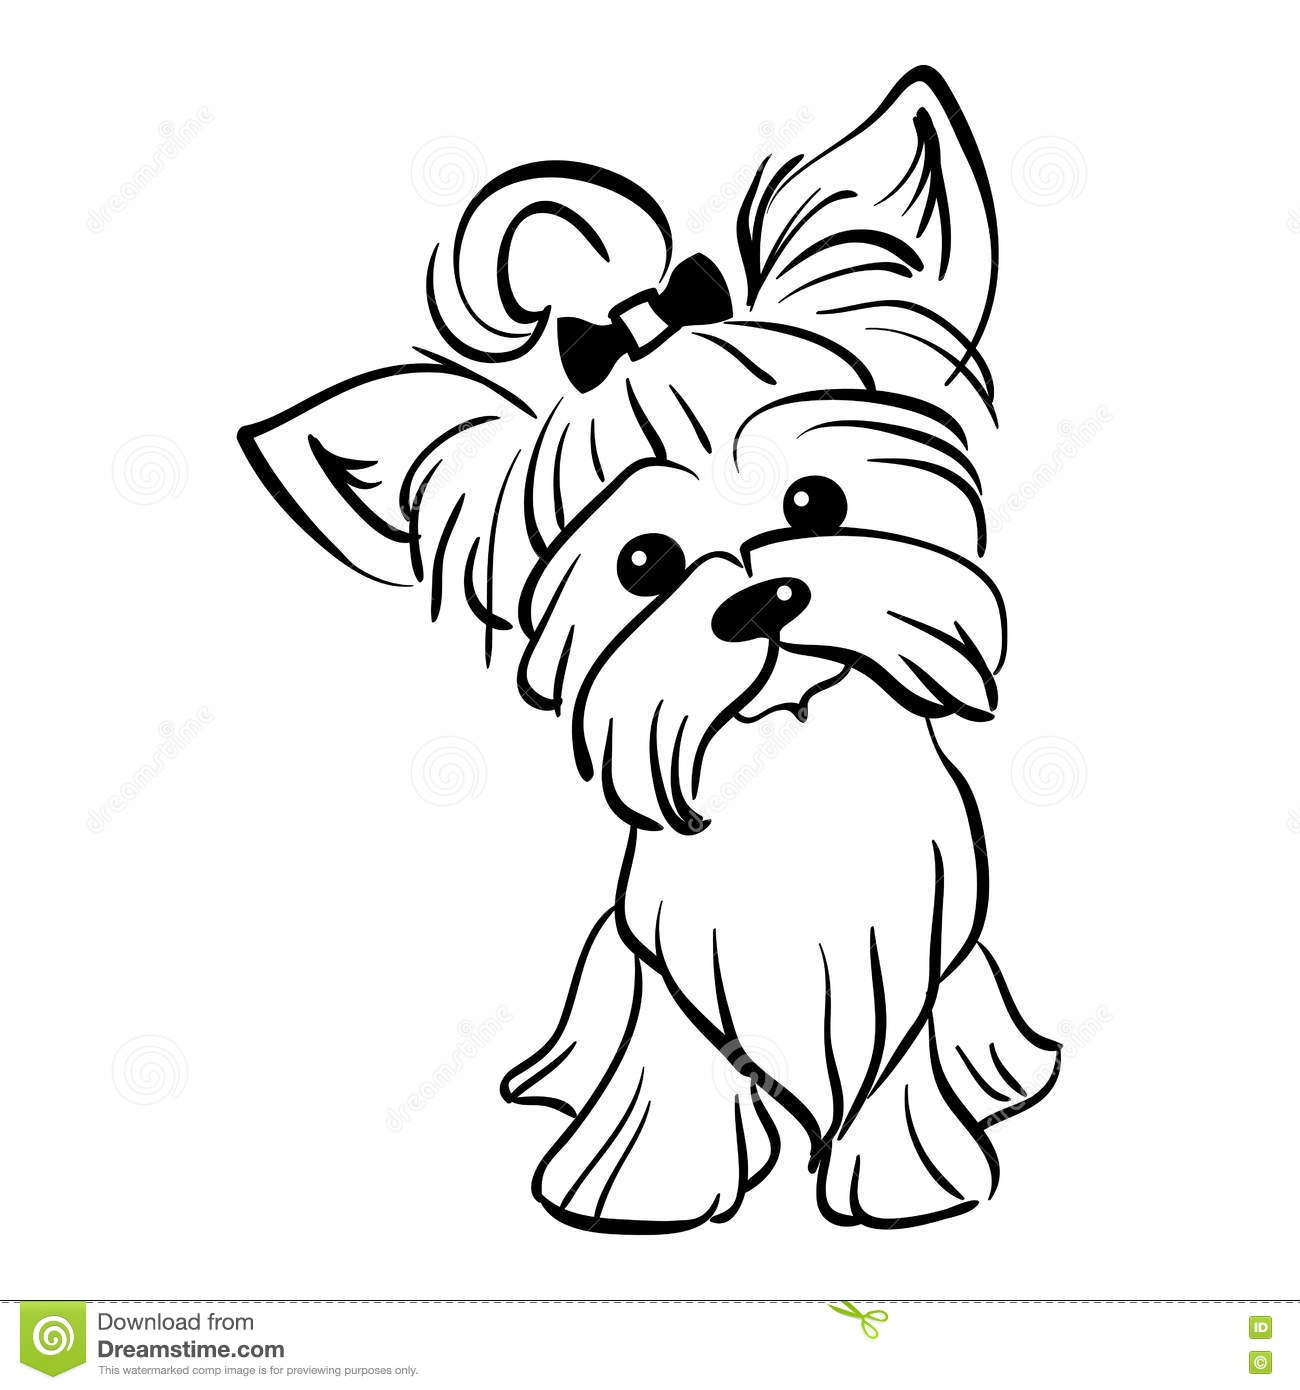 Pin Yorkshire Terrier Coloring Pages On Pinterest Yorkie Coloring Page